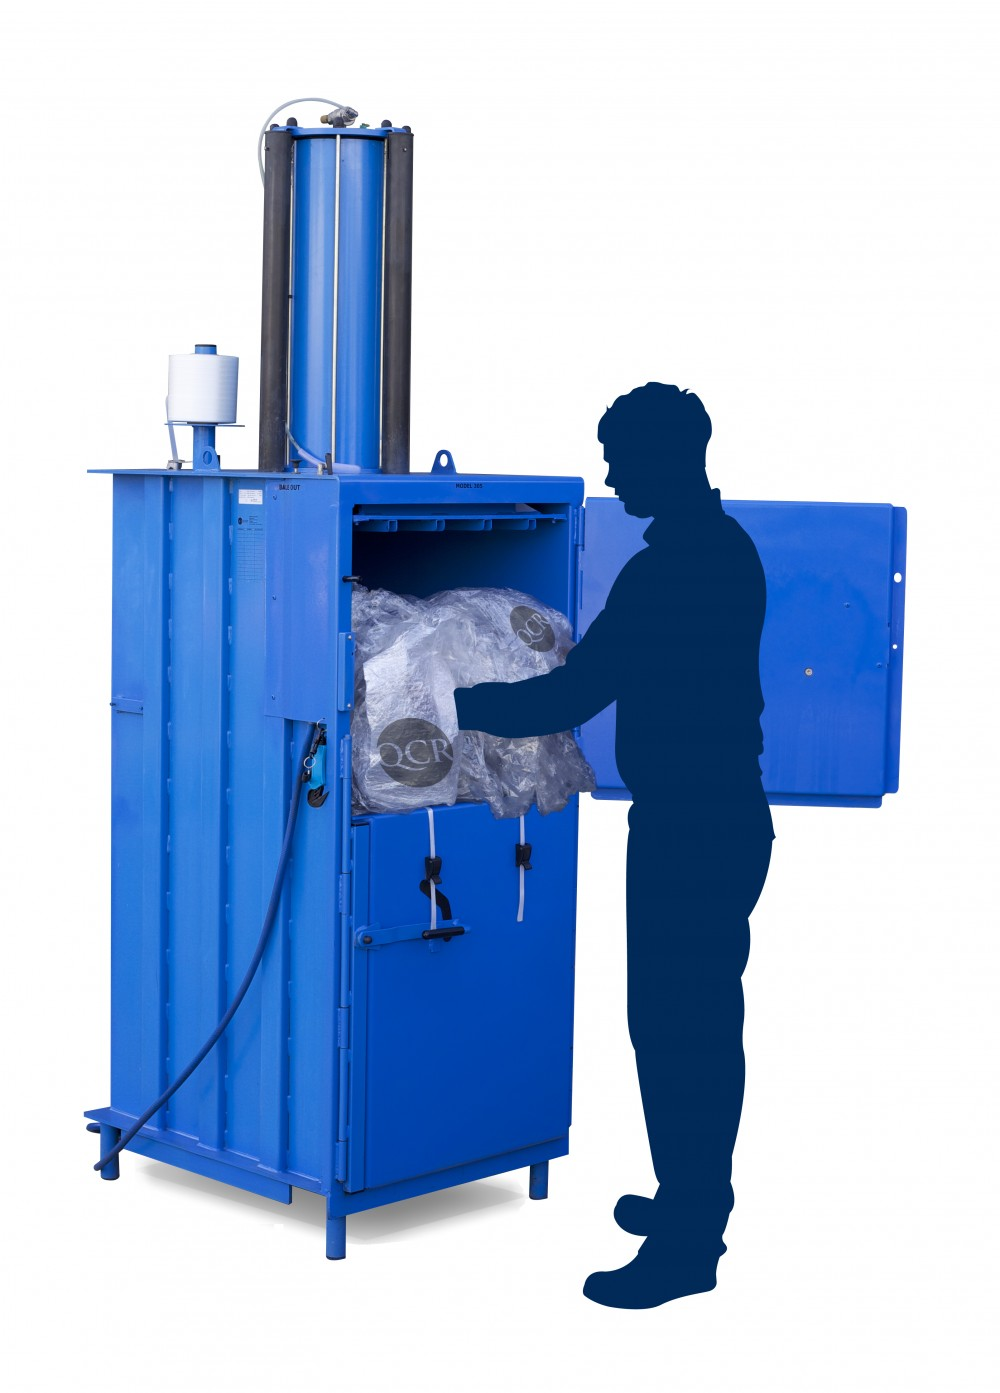 Medium size baler for plastics